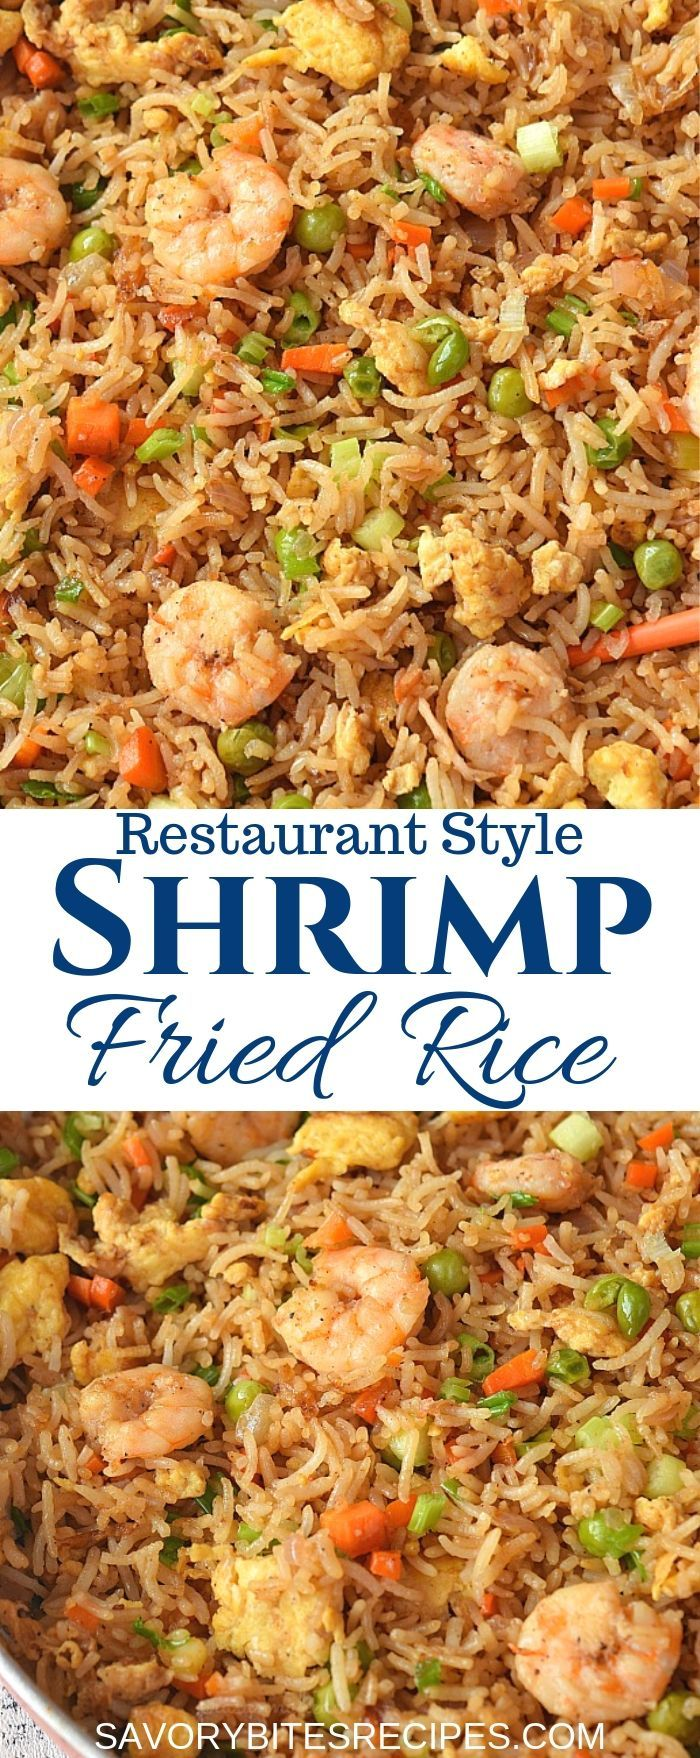 Under 30 mins-better than takeout - shrimp fried rice!